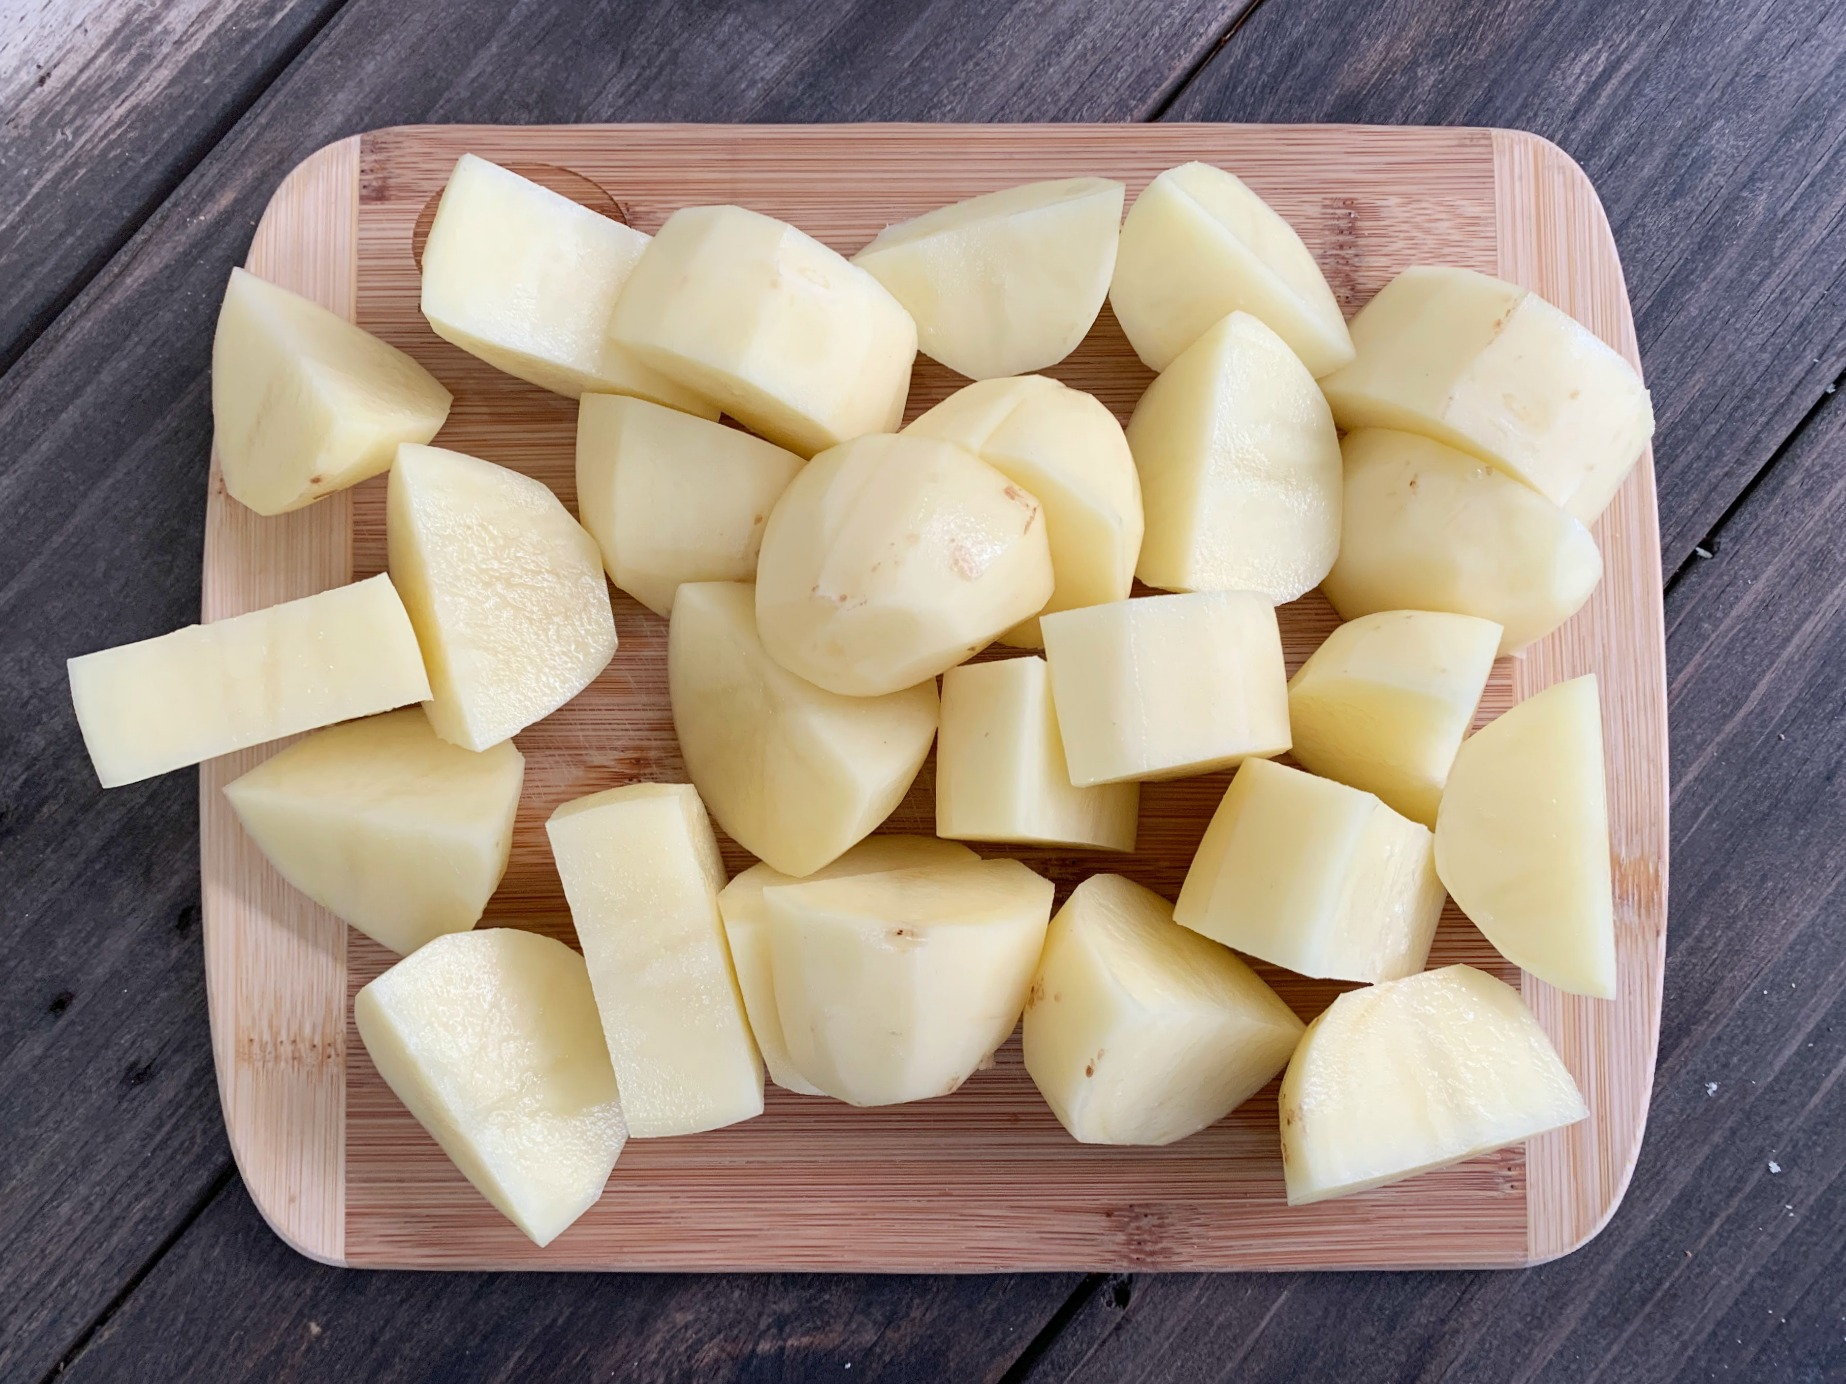 chopped potatoes on a wooden cutting board